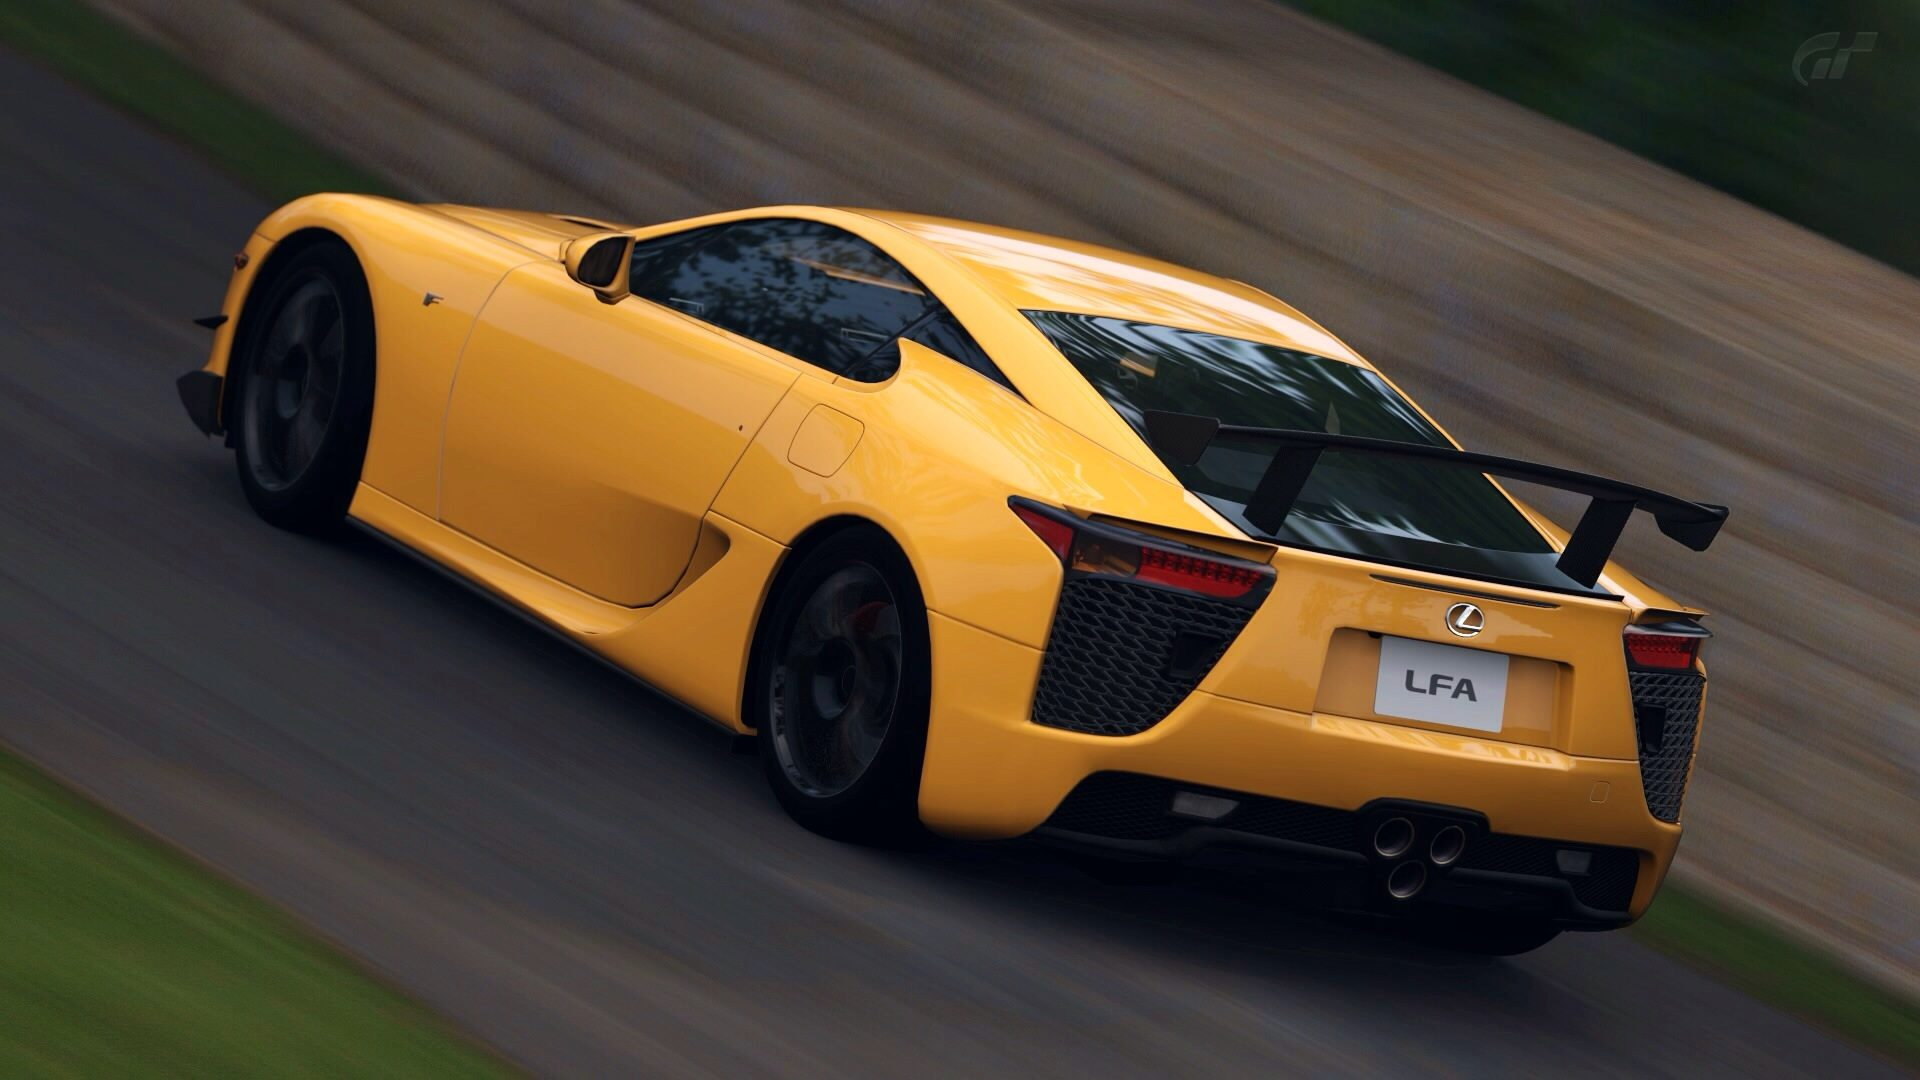 LFA Nurburgring Ed. Goodwood (7).jpg